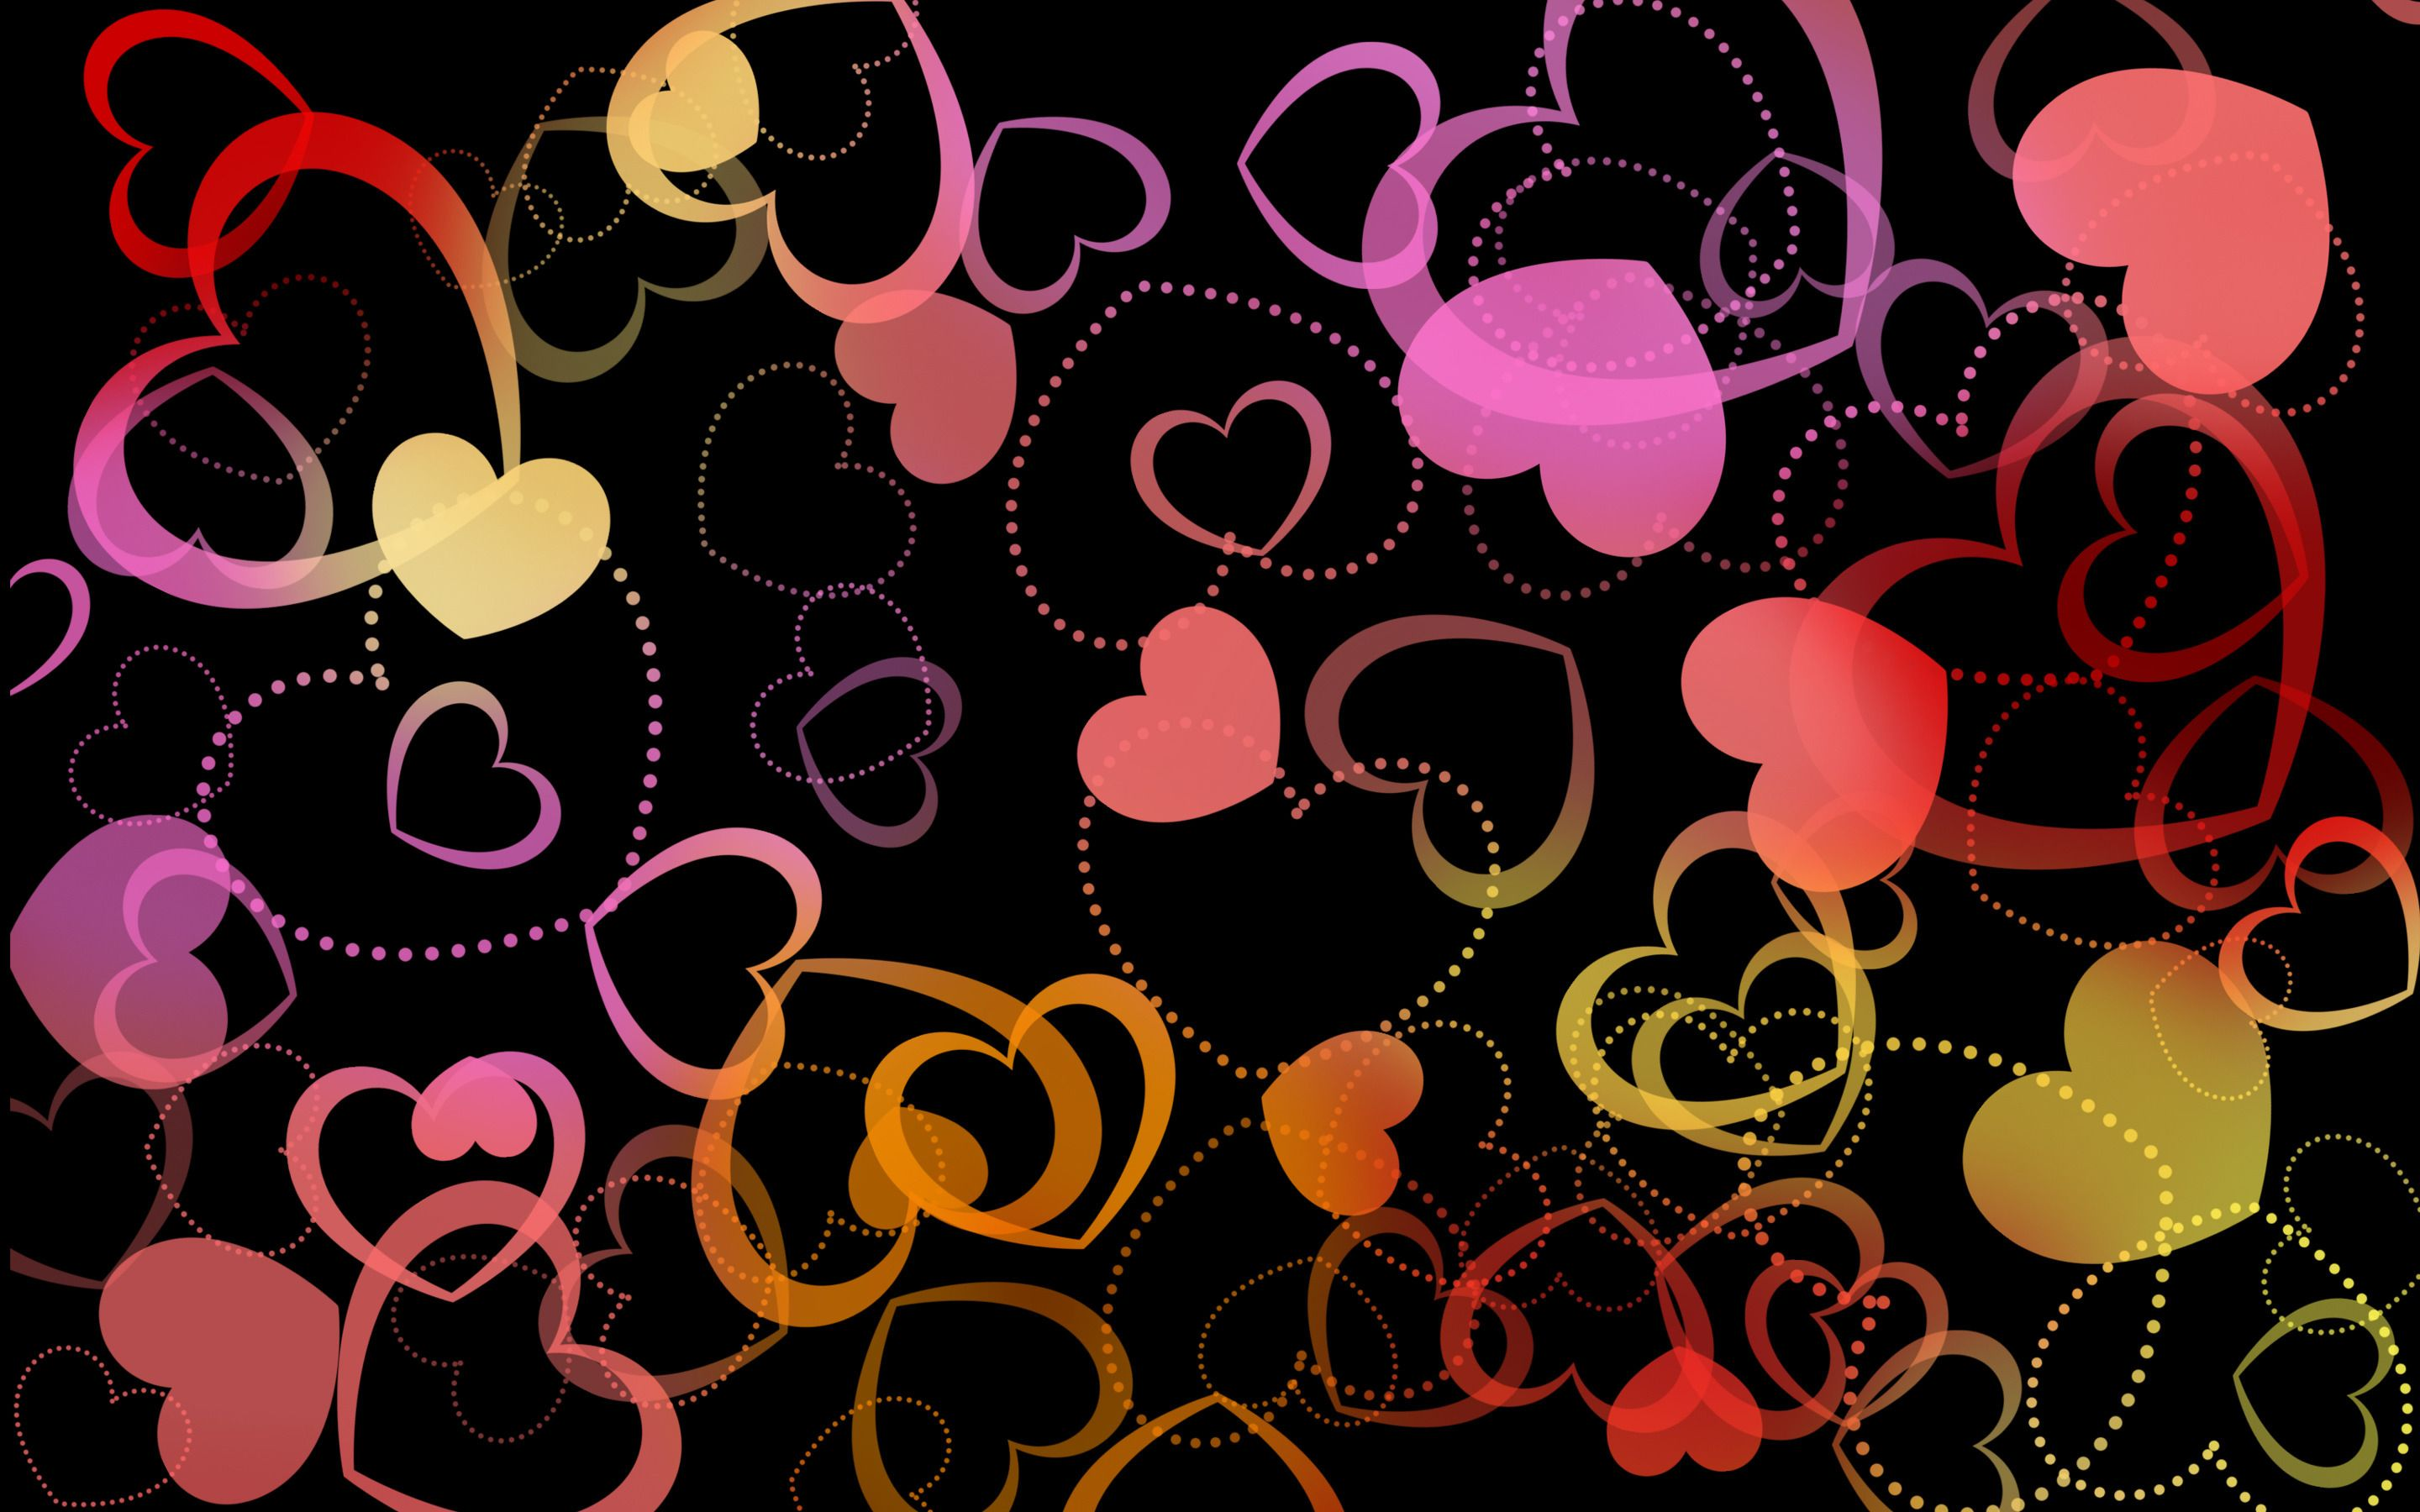 Colorful Hearts Holiday Hd Wallpapers